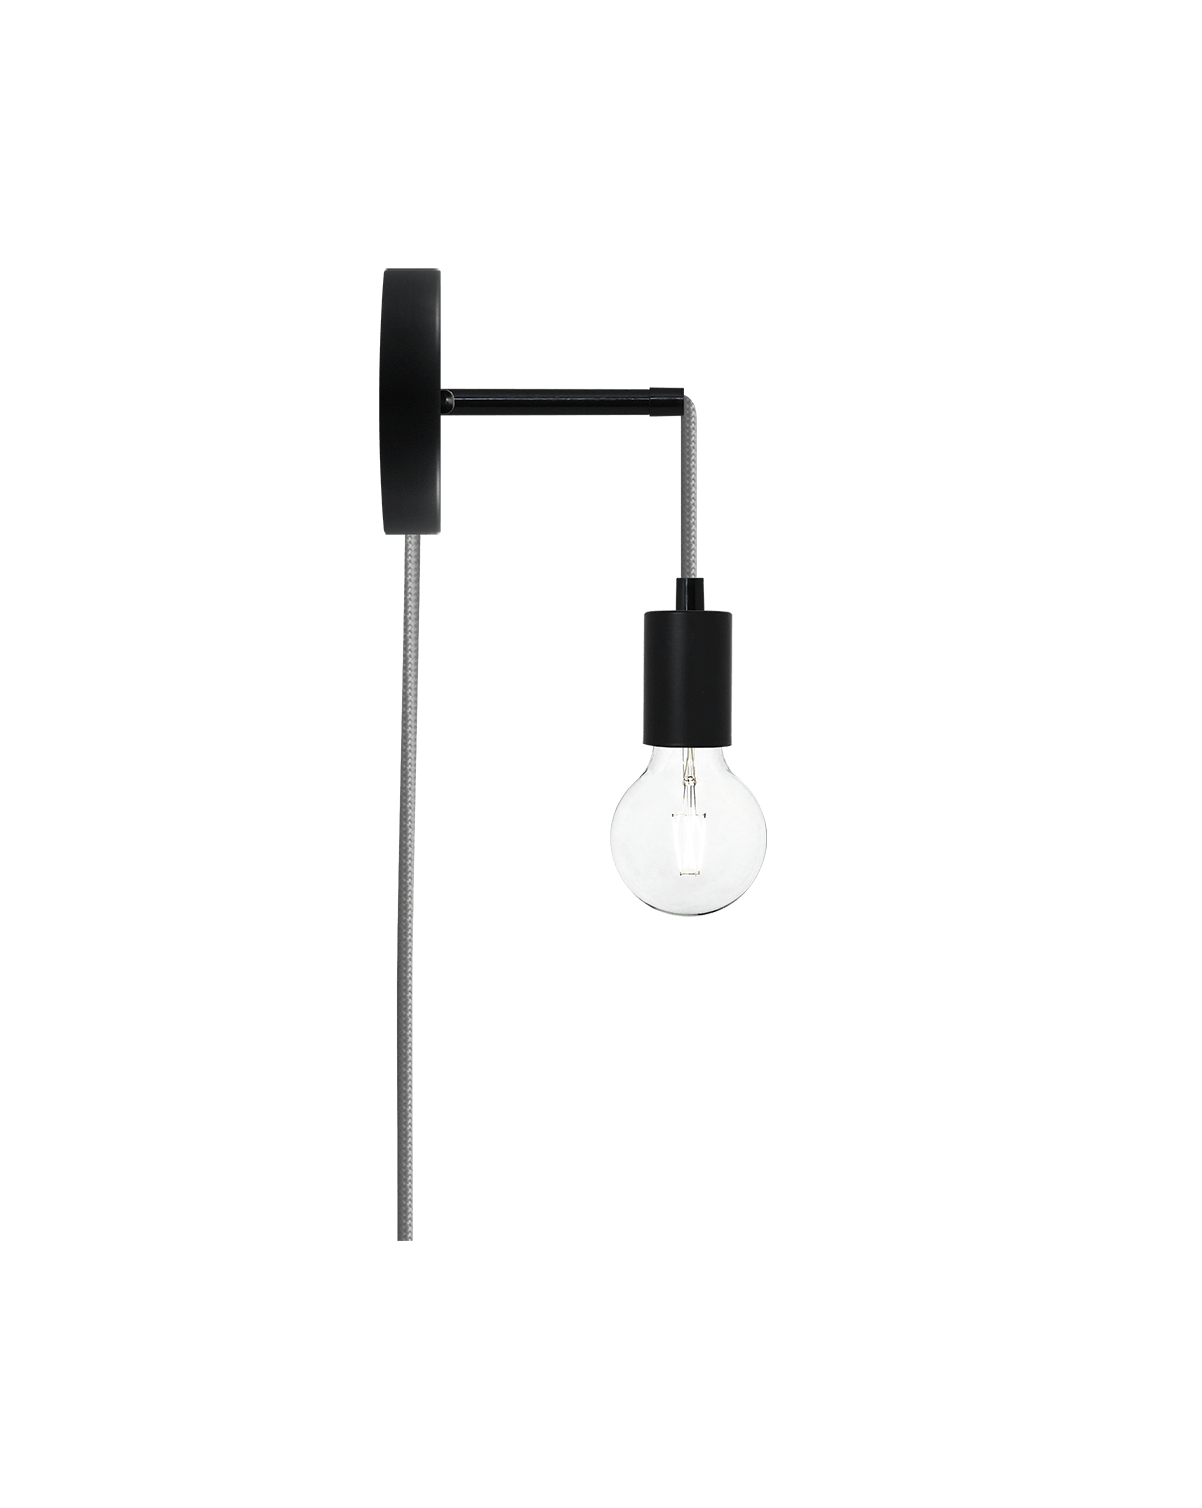 Plug-in Adjustable Wall Sconce: Black and Grey Hangout Lighting